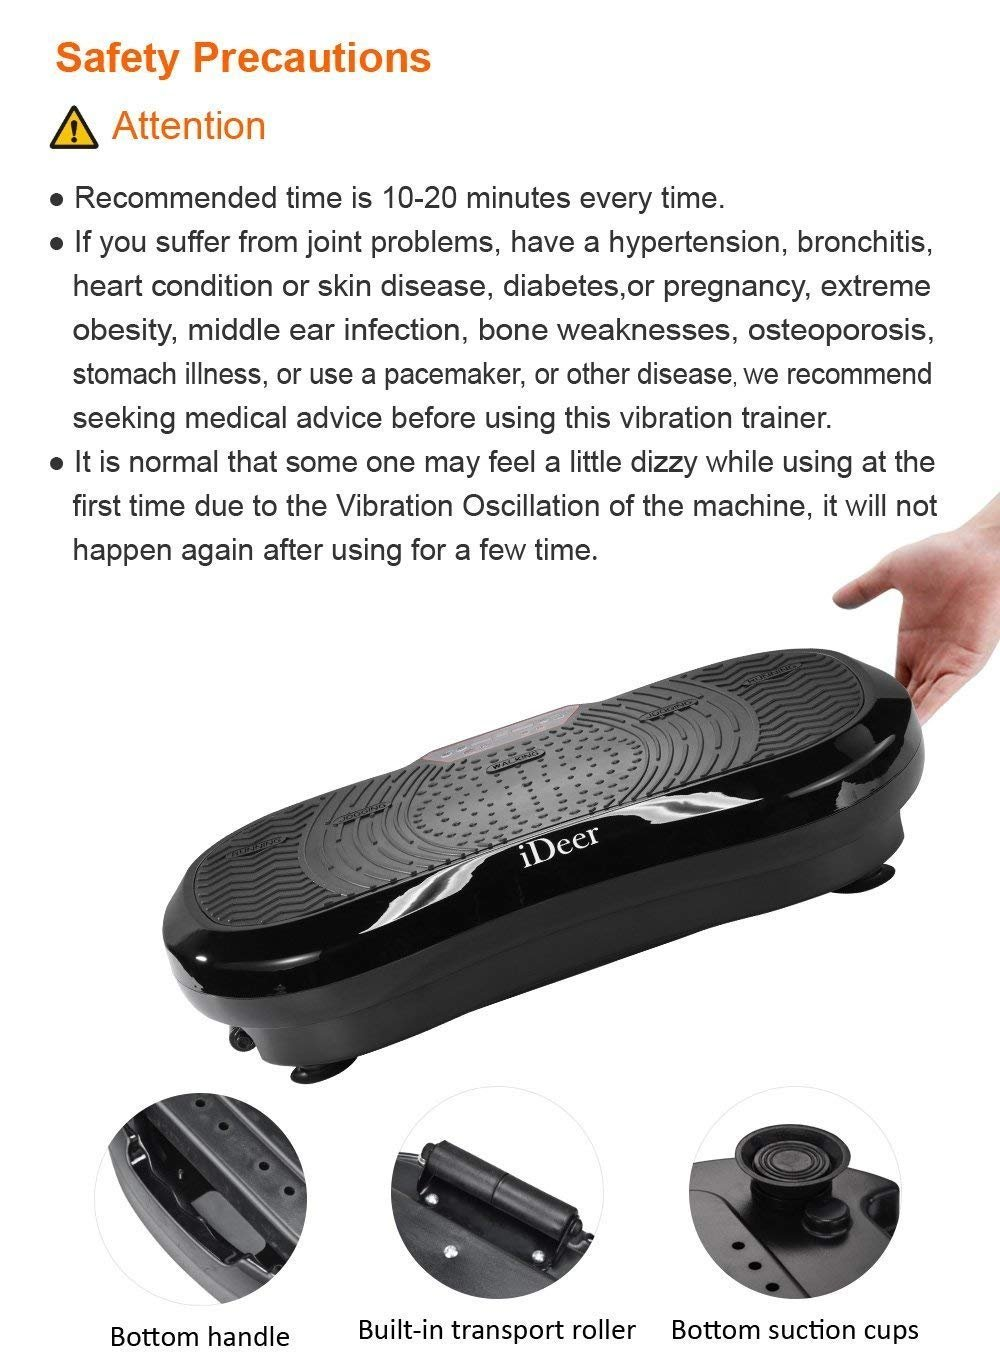 iDeer Vibration Platform Fitness Vibration Plates,Whole Body Vibration Exercise Machine w/Remote Control &Bands,Anti-Slip Fit Massage Workout Vibration Trainer Max User Weight 330lbs (Black09001) by IDEER LIFE (Image #8)